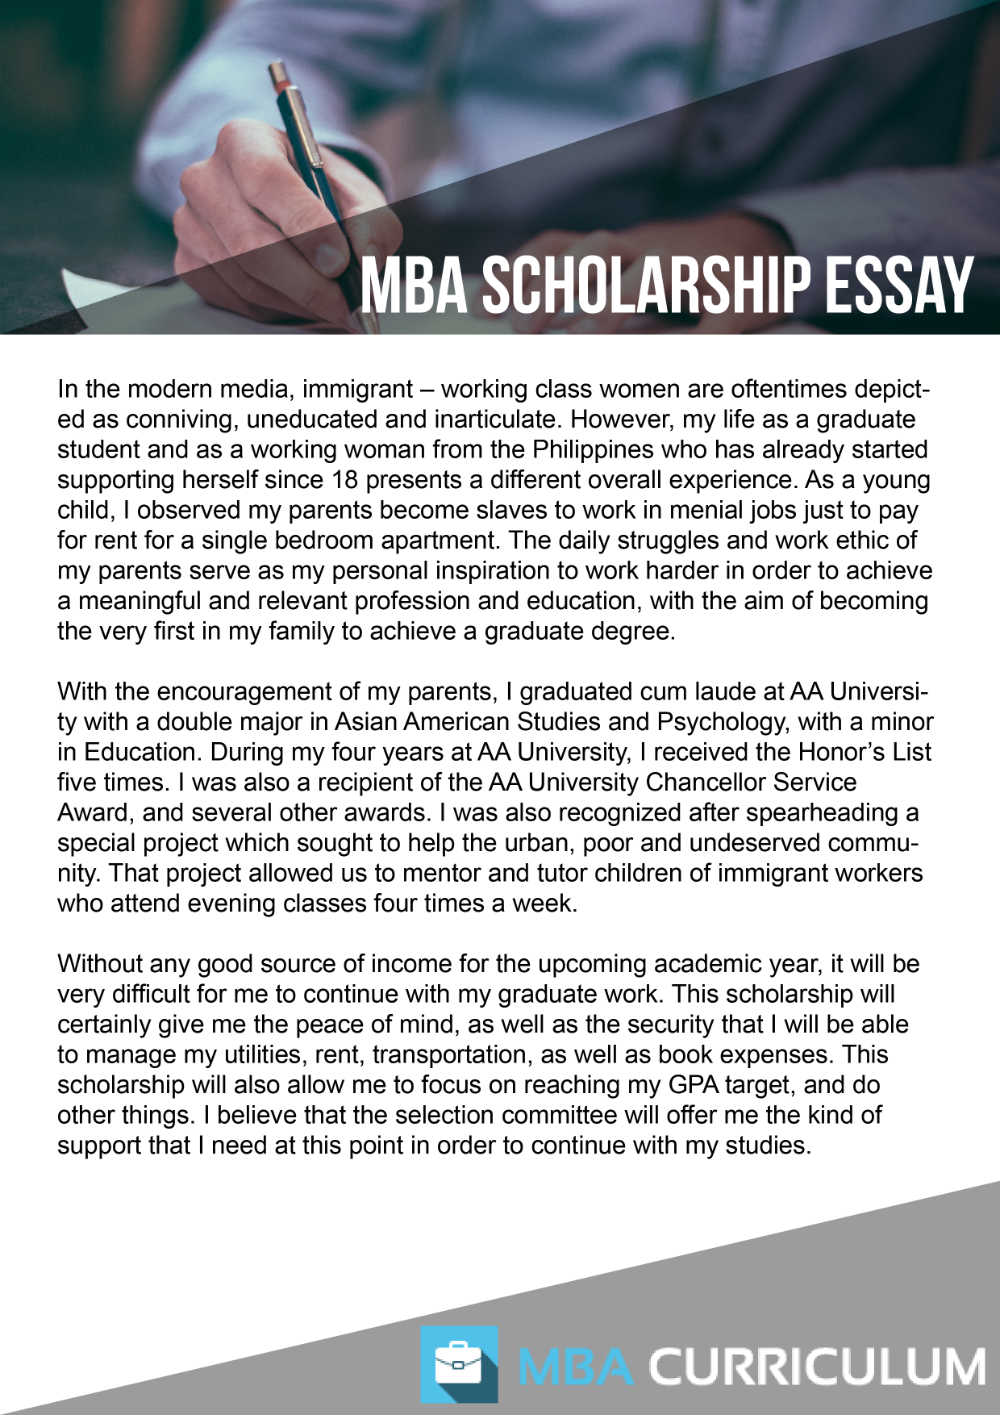 mba admission essay review Essay on terrorism in pakistan   Find out all you need to know about custom  writing Proposals and resumes at most affordable prices